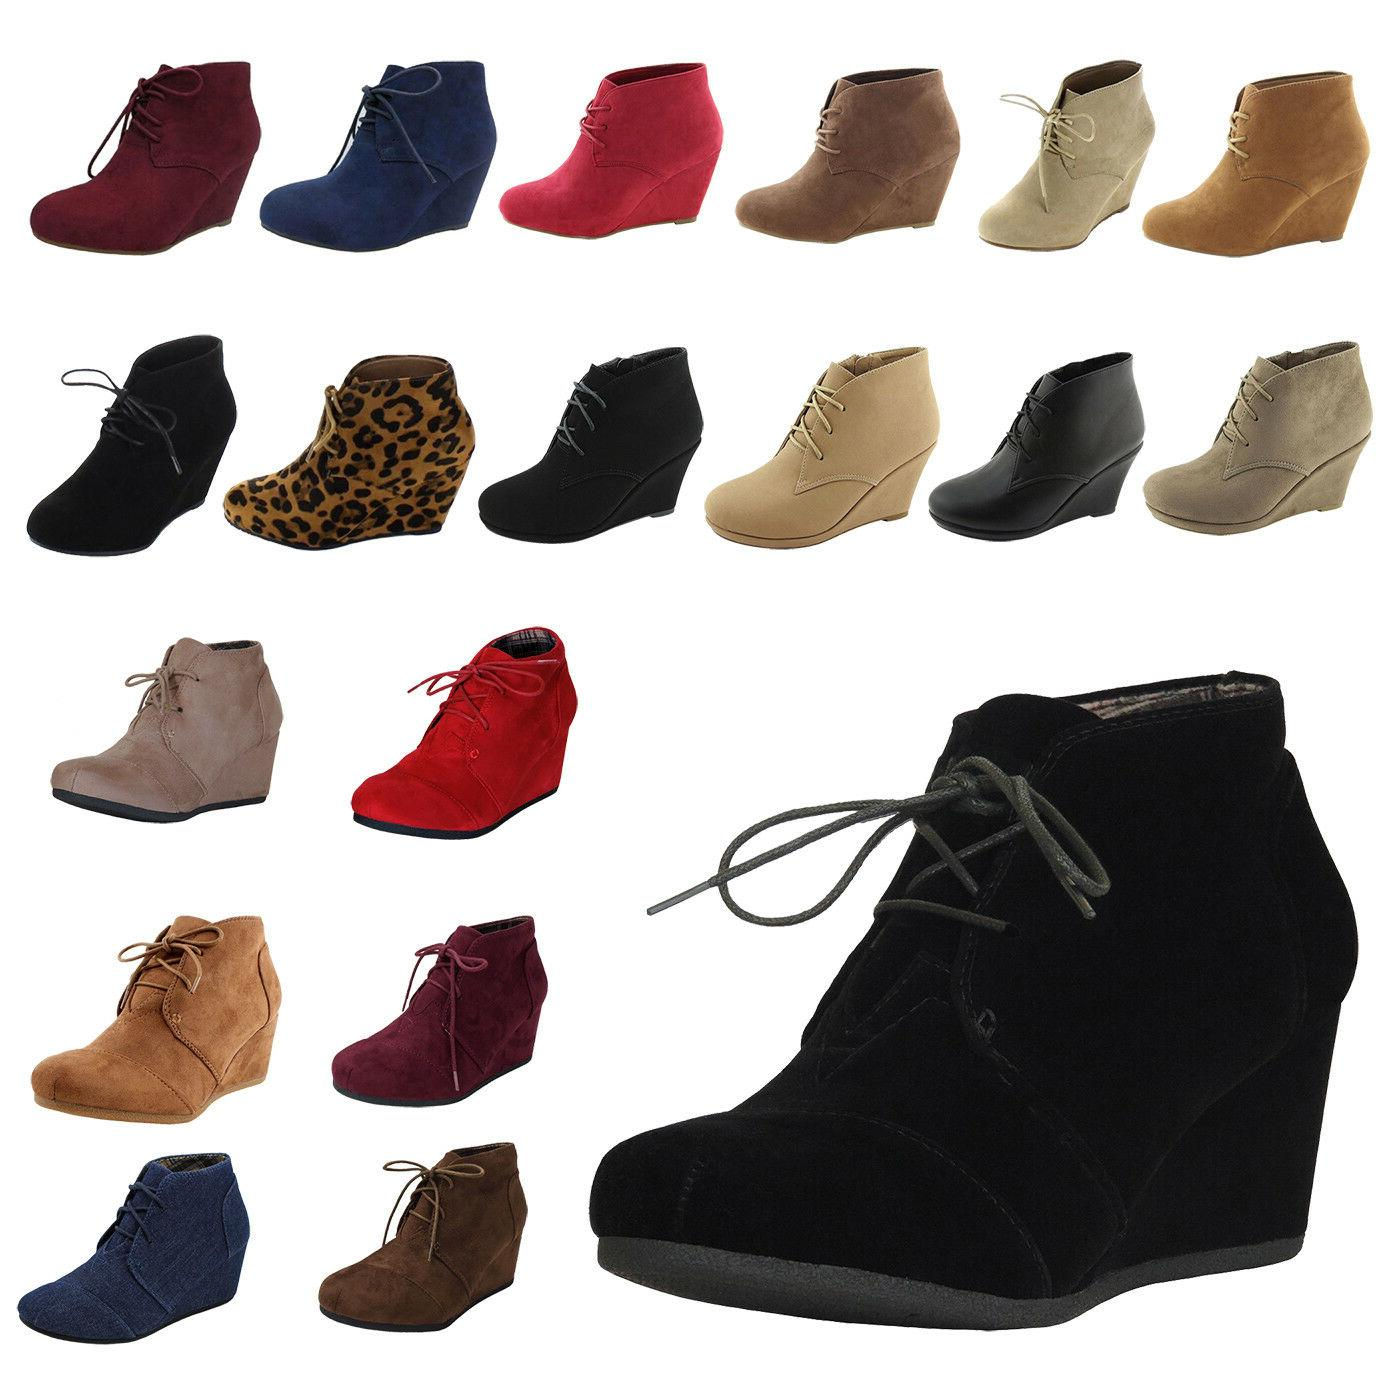 NEW Womens Wedge Booties Oxford High Heels Ankle Boots Shoes